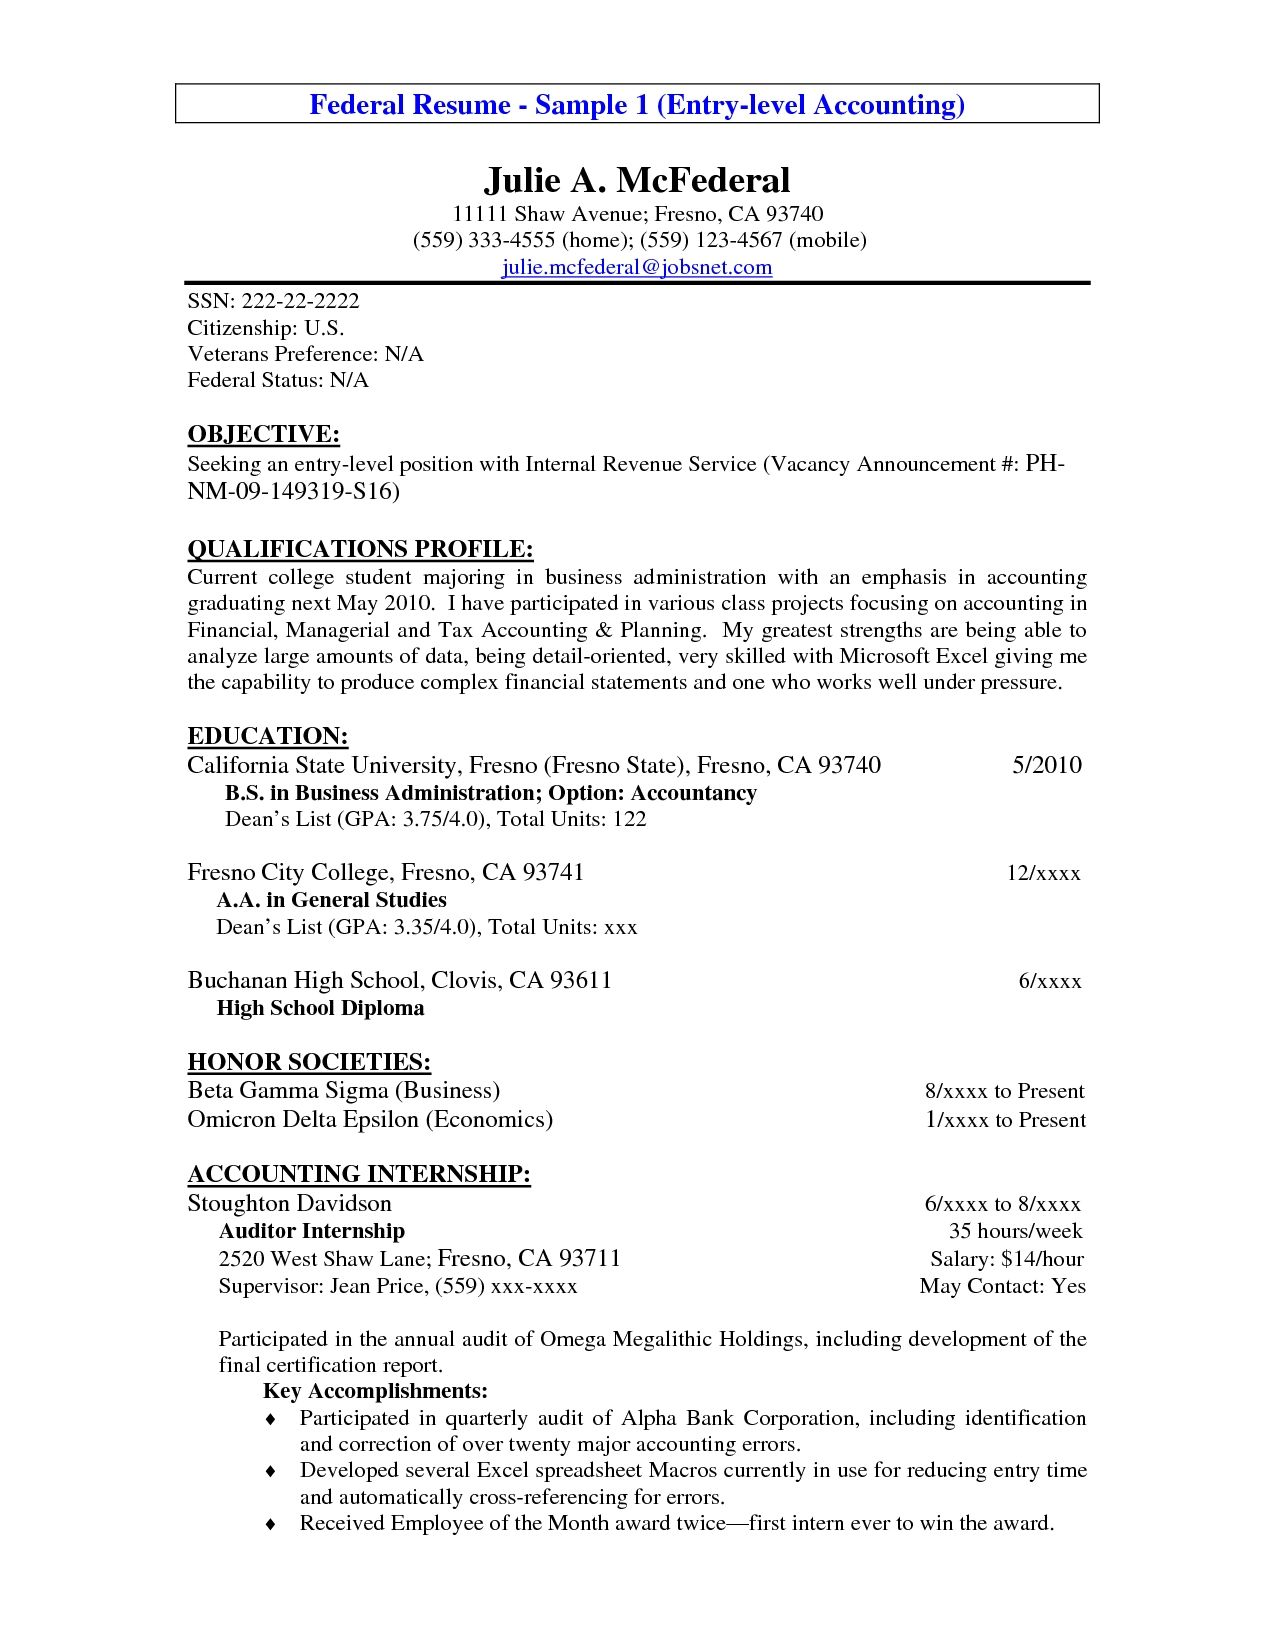 entry level resume example entry level accounting resume sample gallery photos - Entry Level Resume Samples